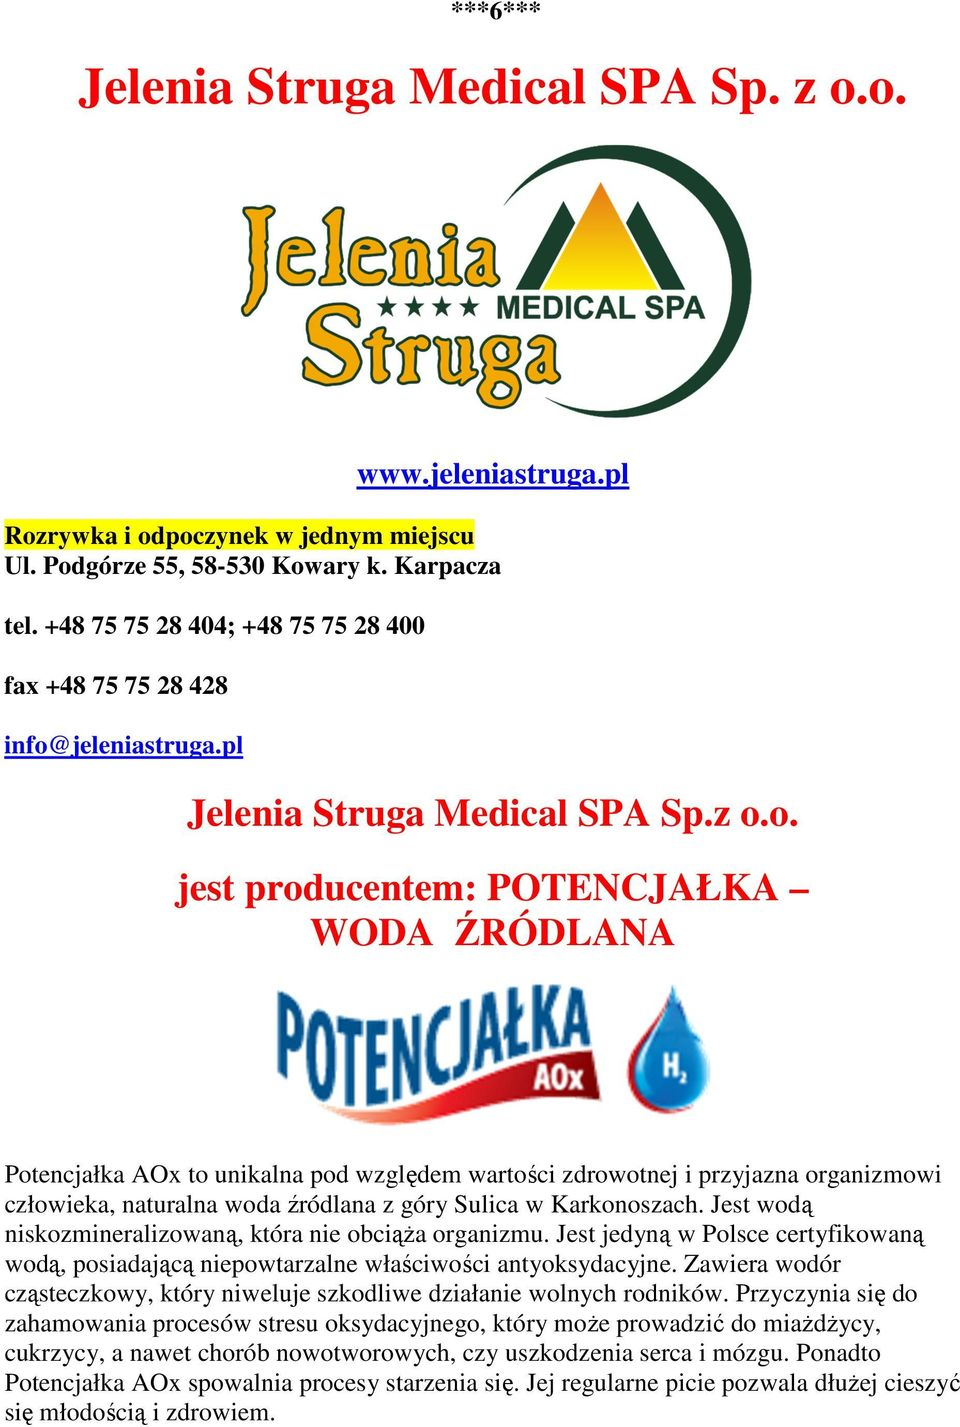 jeleniastruga.pl Jelenia Struga Medical SPA Sp.z o.